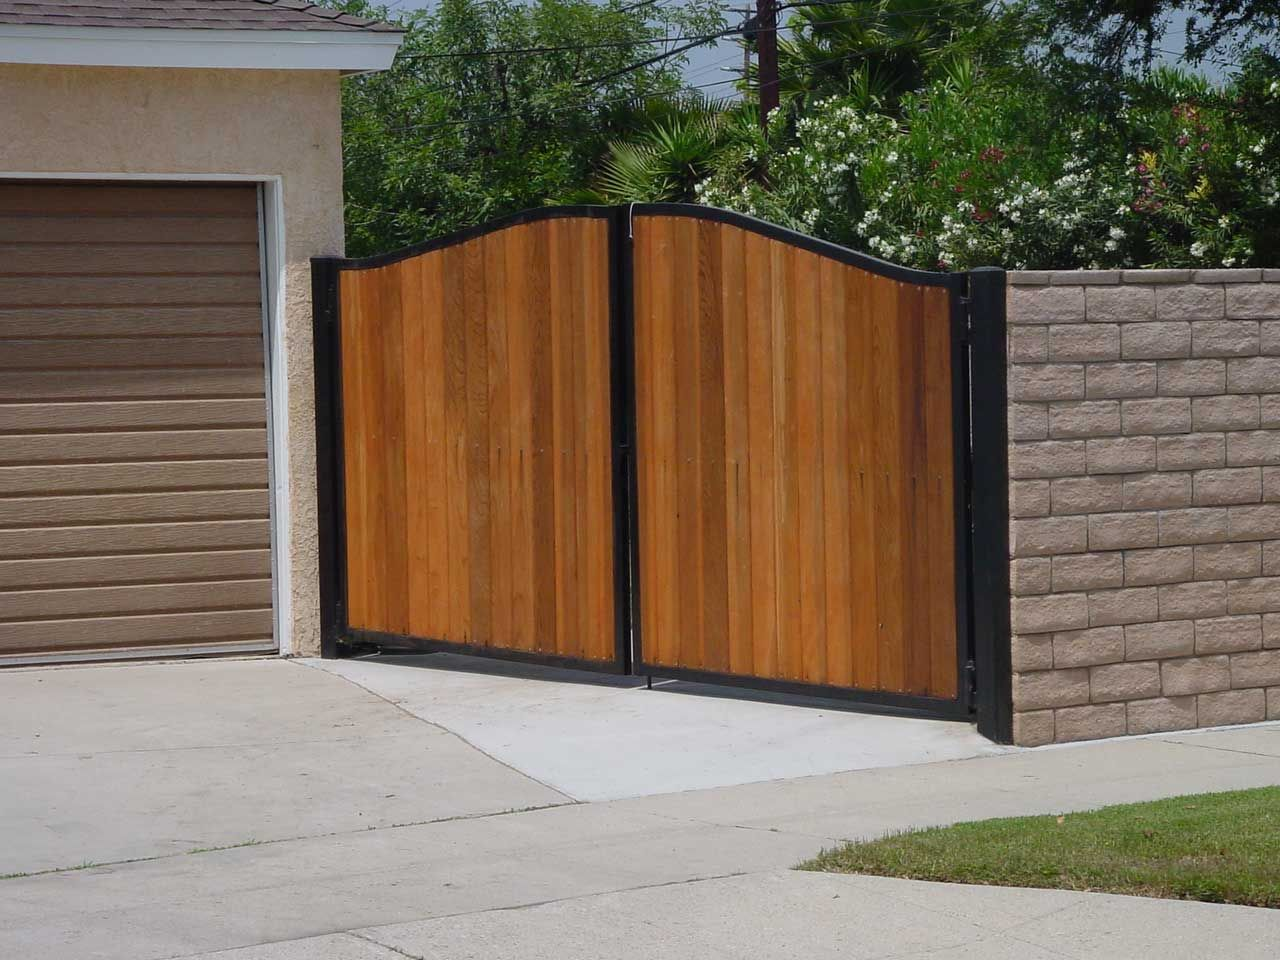 wooden fence gate design ideas best house design ideas - Fence Gate Design Ideas